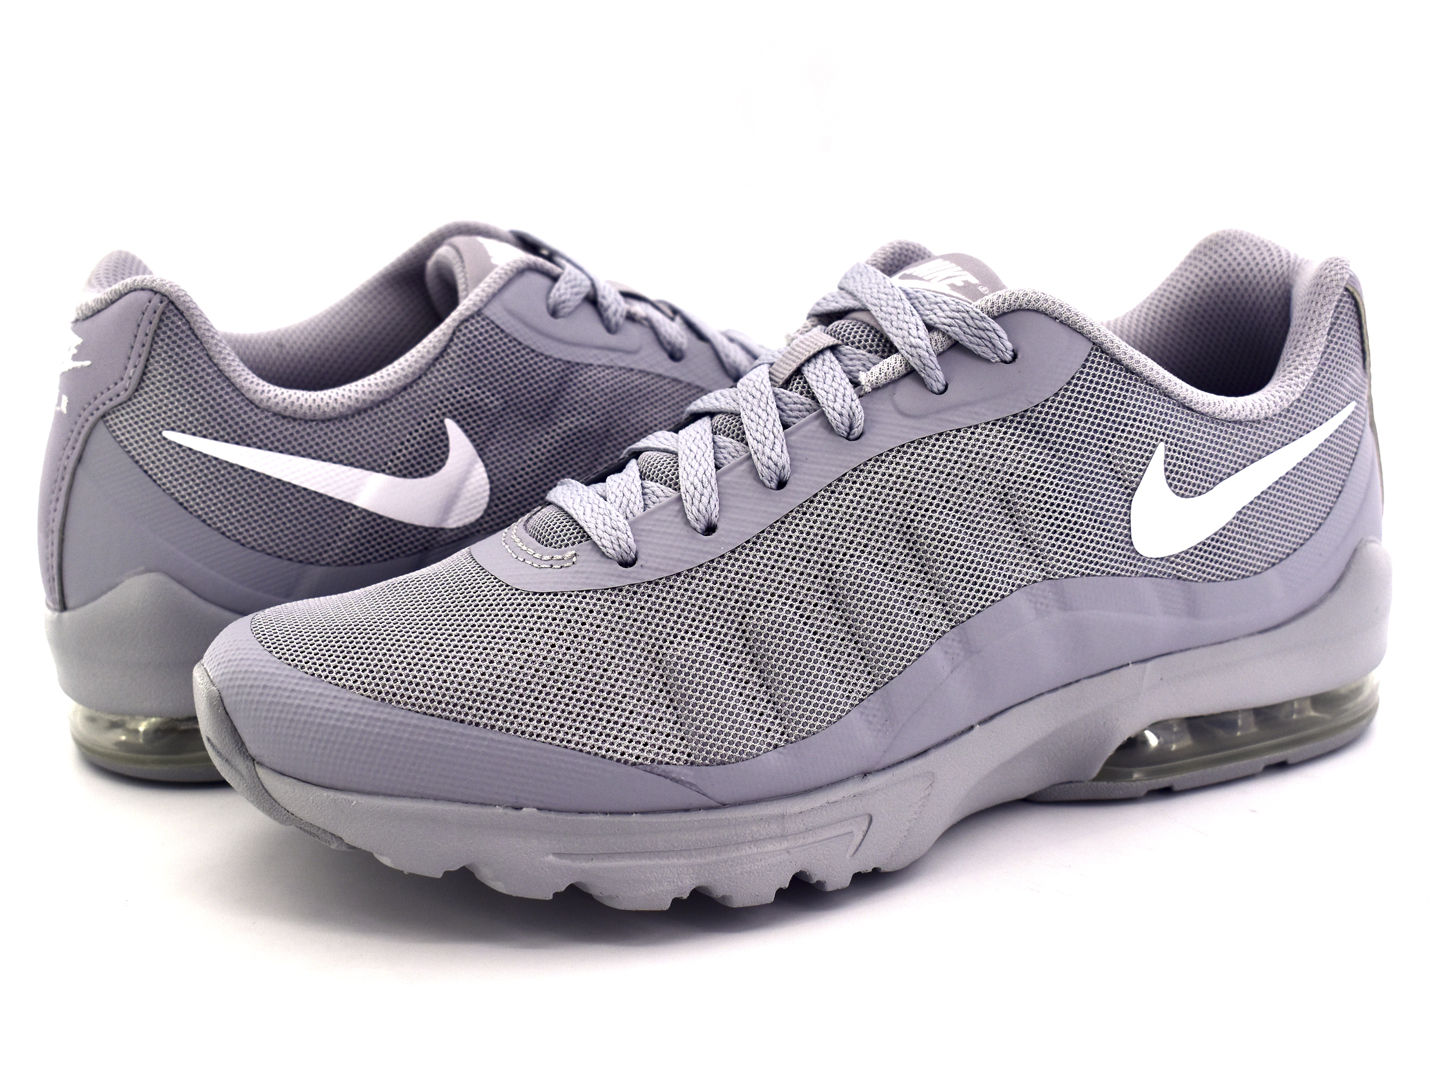 new products casual shoes nice shoes NIKE 749680 005 WOLF GREY/WHITE AIR MAX INVIGOR 25-31